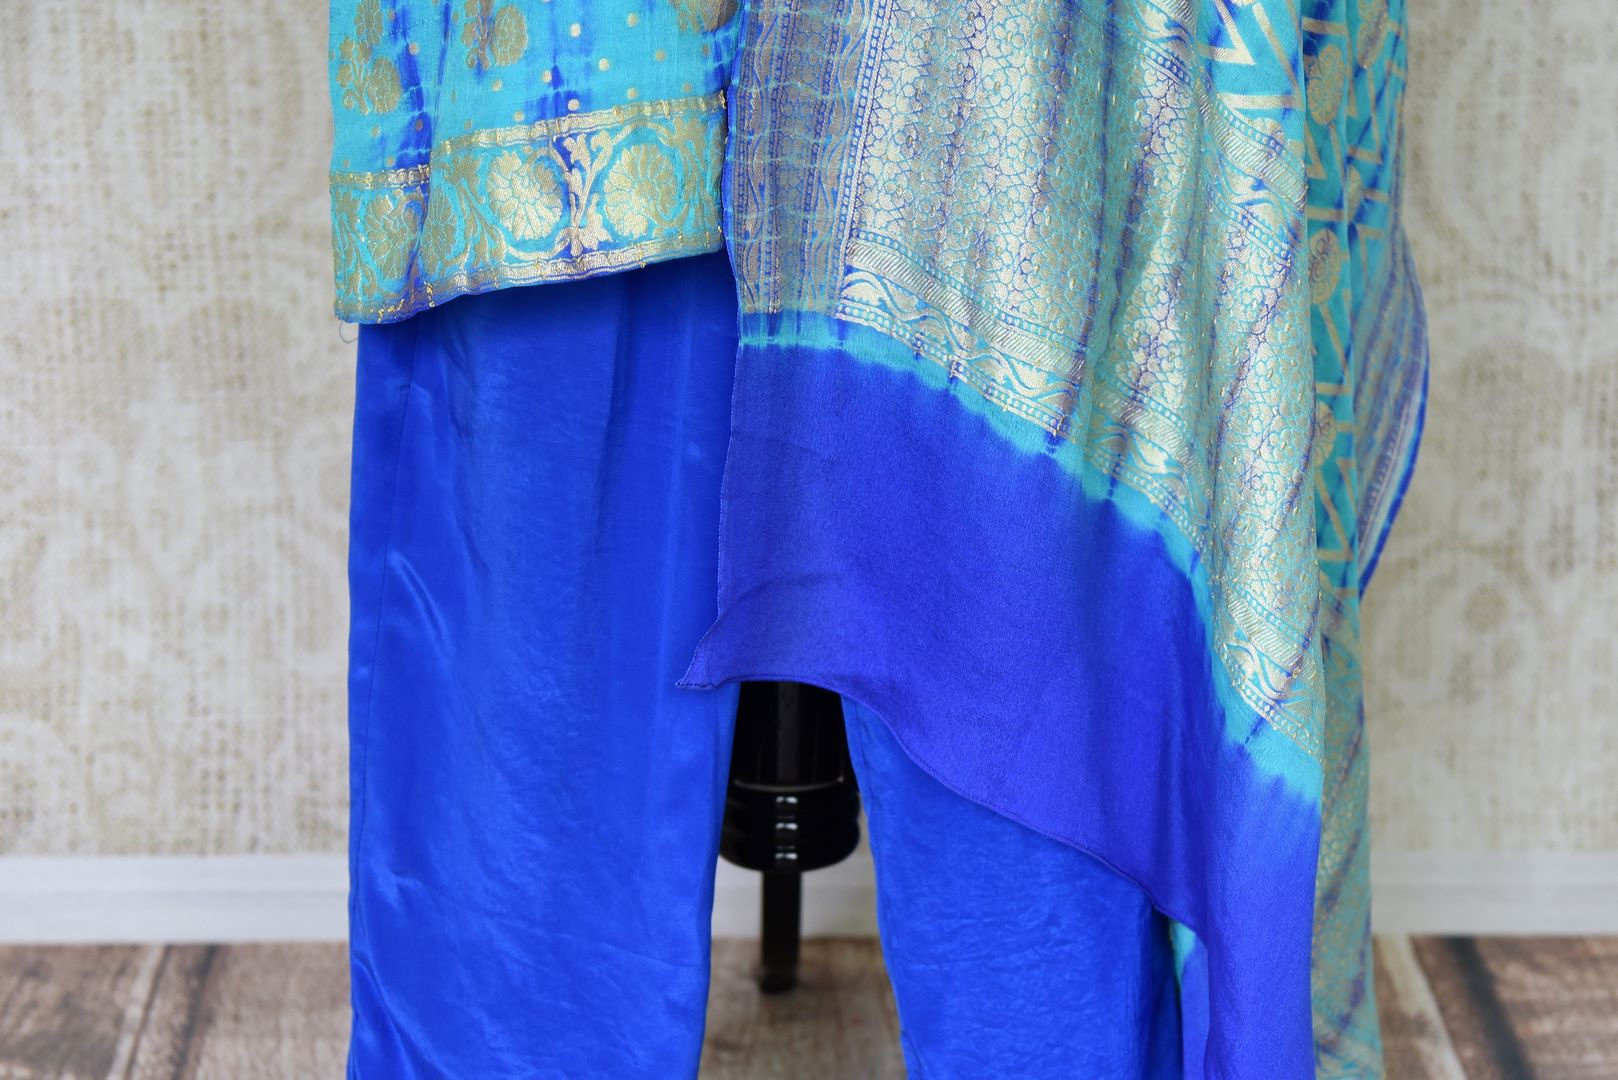 Buy turquoise blue Banarasi georgette salwar suit online in USA and dupatta from Pure Elegance Indian fashion store in USA. Make a stylish fashion statement this summer with a range of exquisite Indian designer dresses available online and at our clothing store in USA. Shop now.-bottom